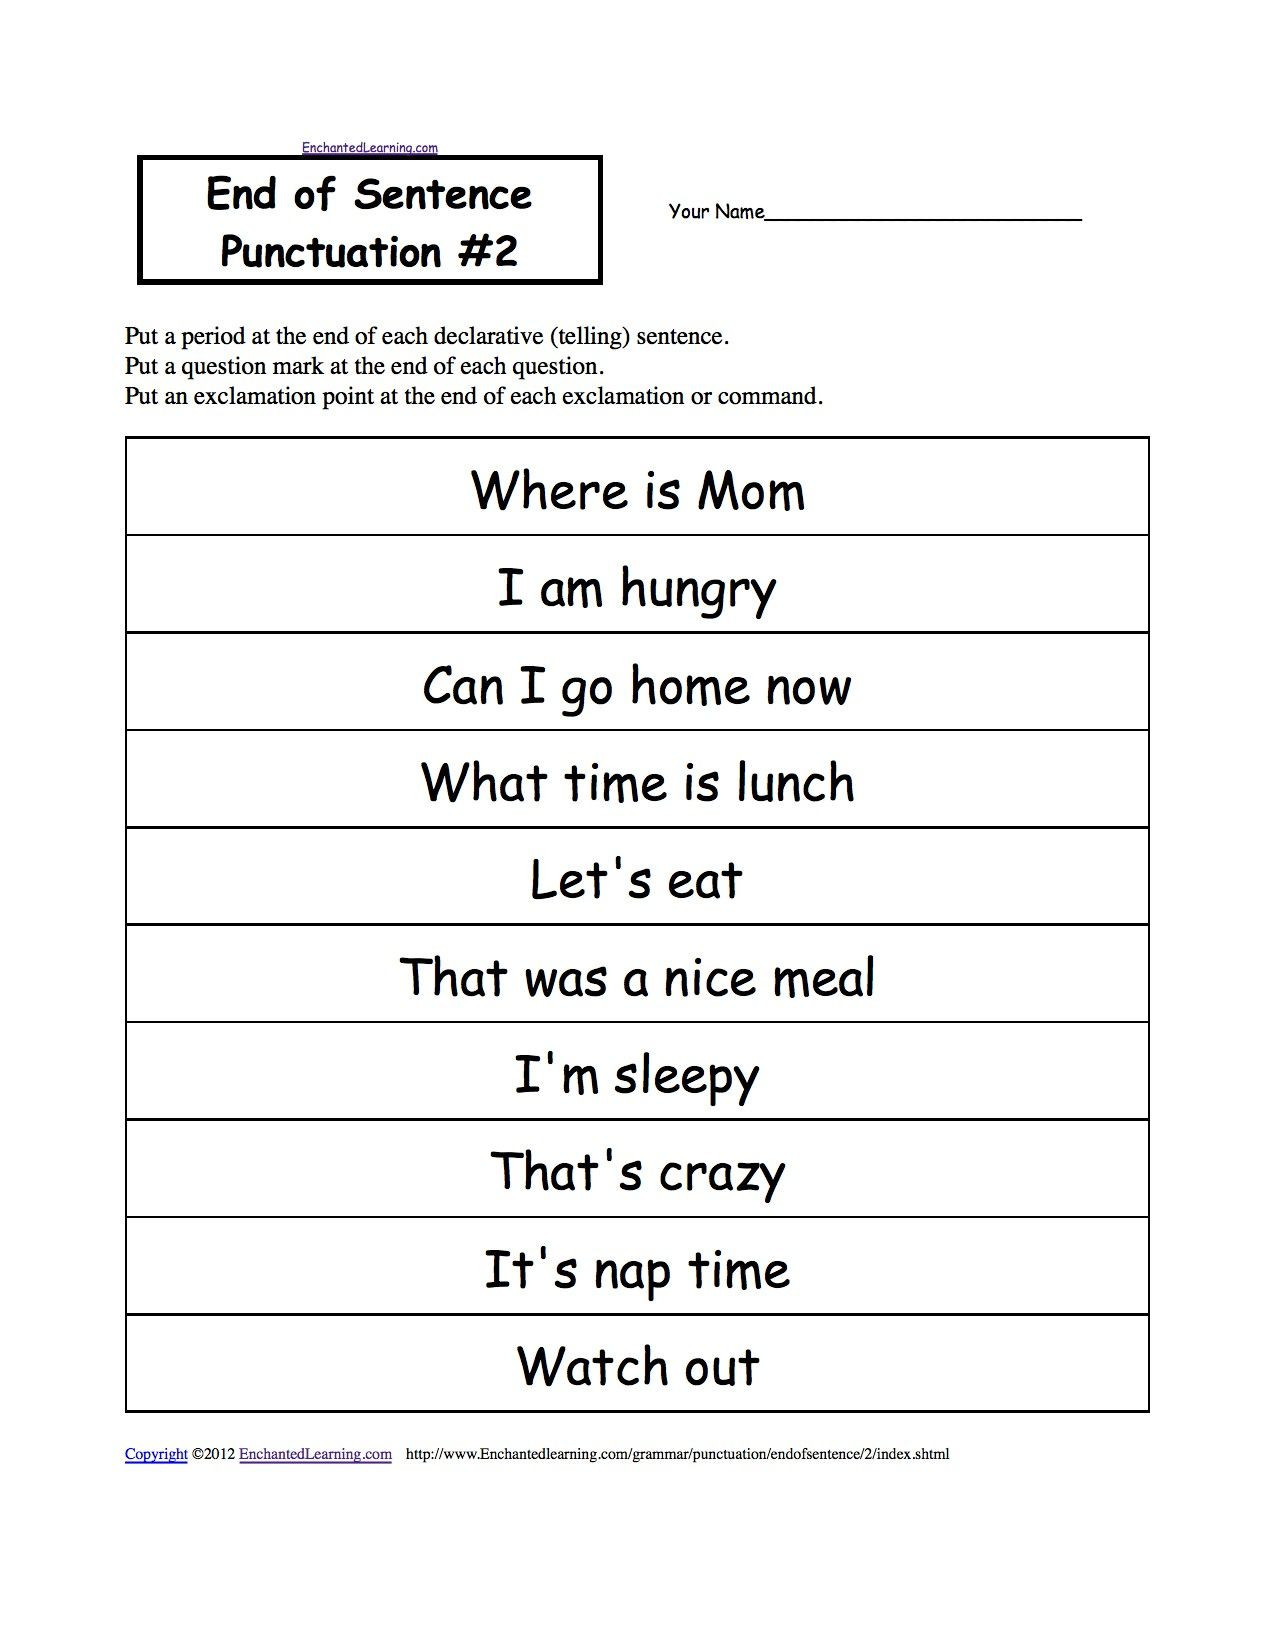 Proofreading Worksheets 3rd Grade Punctuation Practice Worksheets 3rd Grade